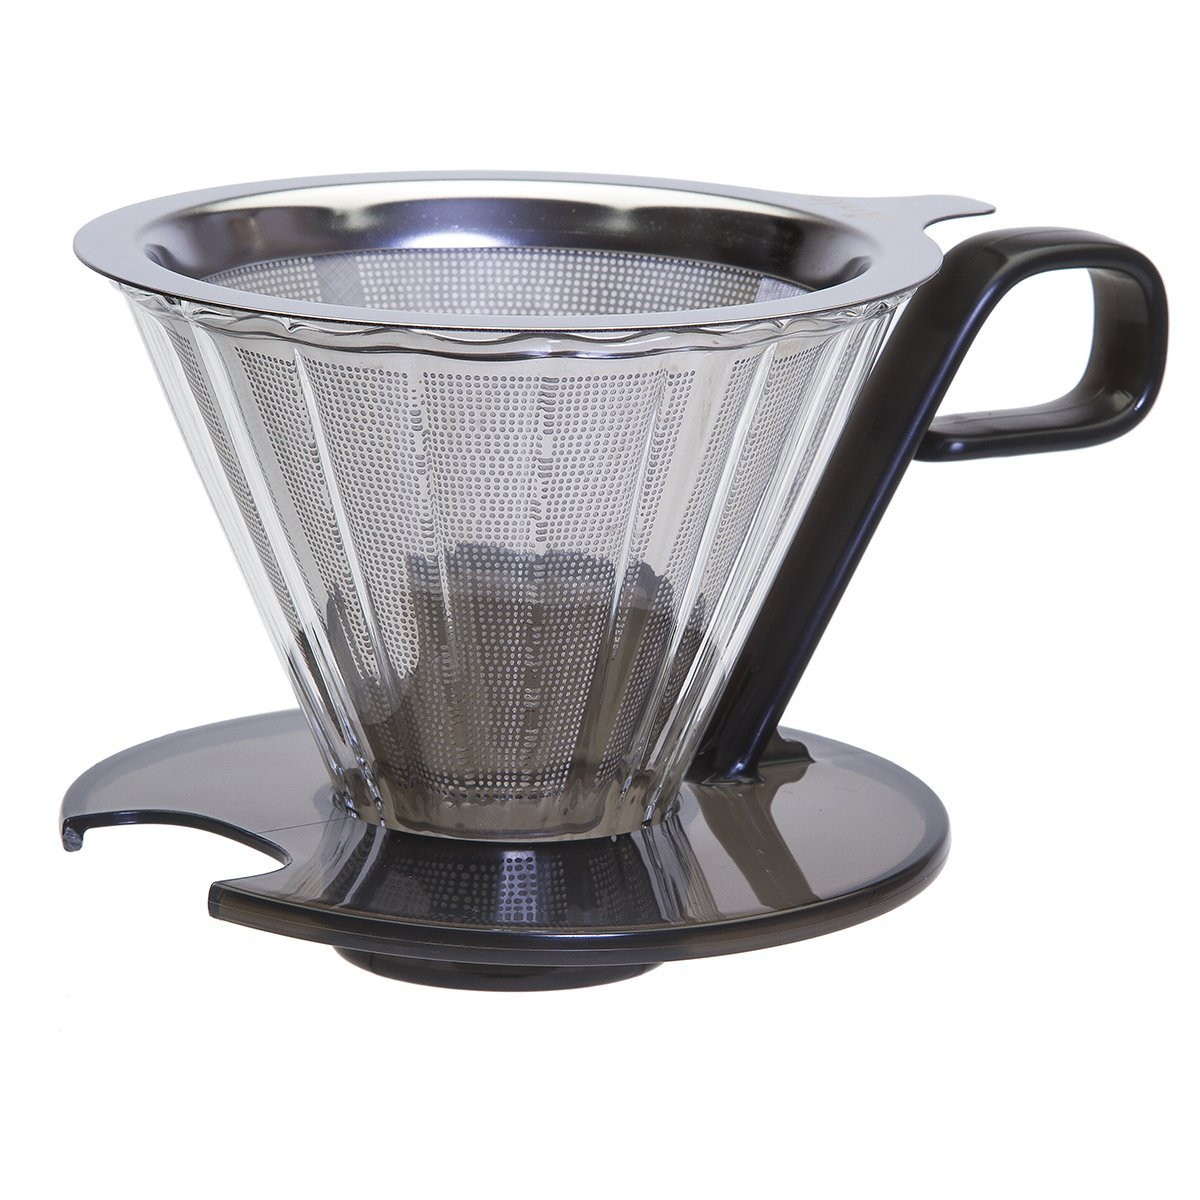 Primula PPOCD-6701 1-Cup Stainless Steel Pour Over Coffee Maker, Black by Primula (Image #1)